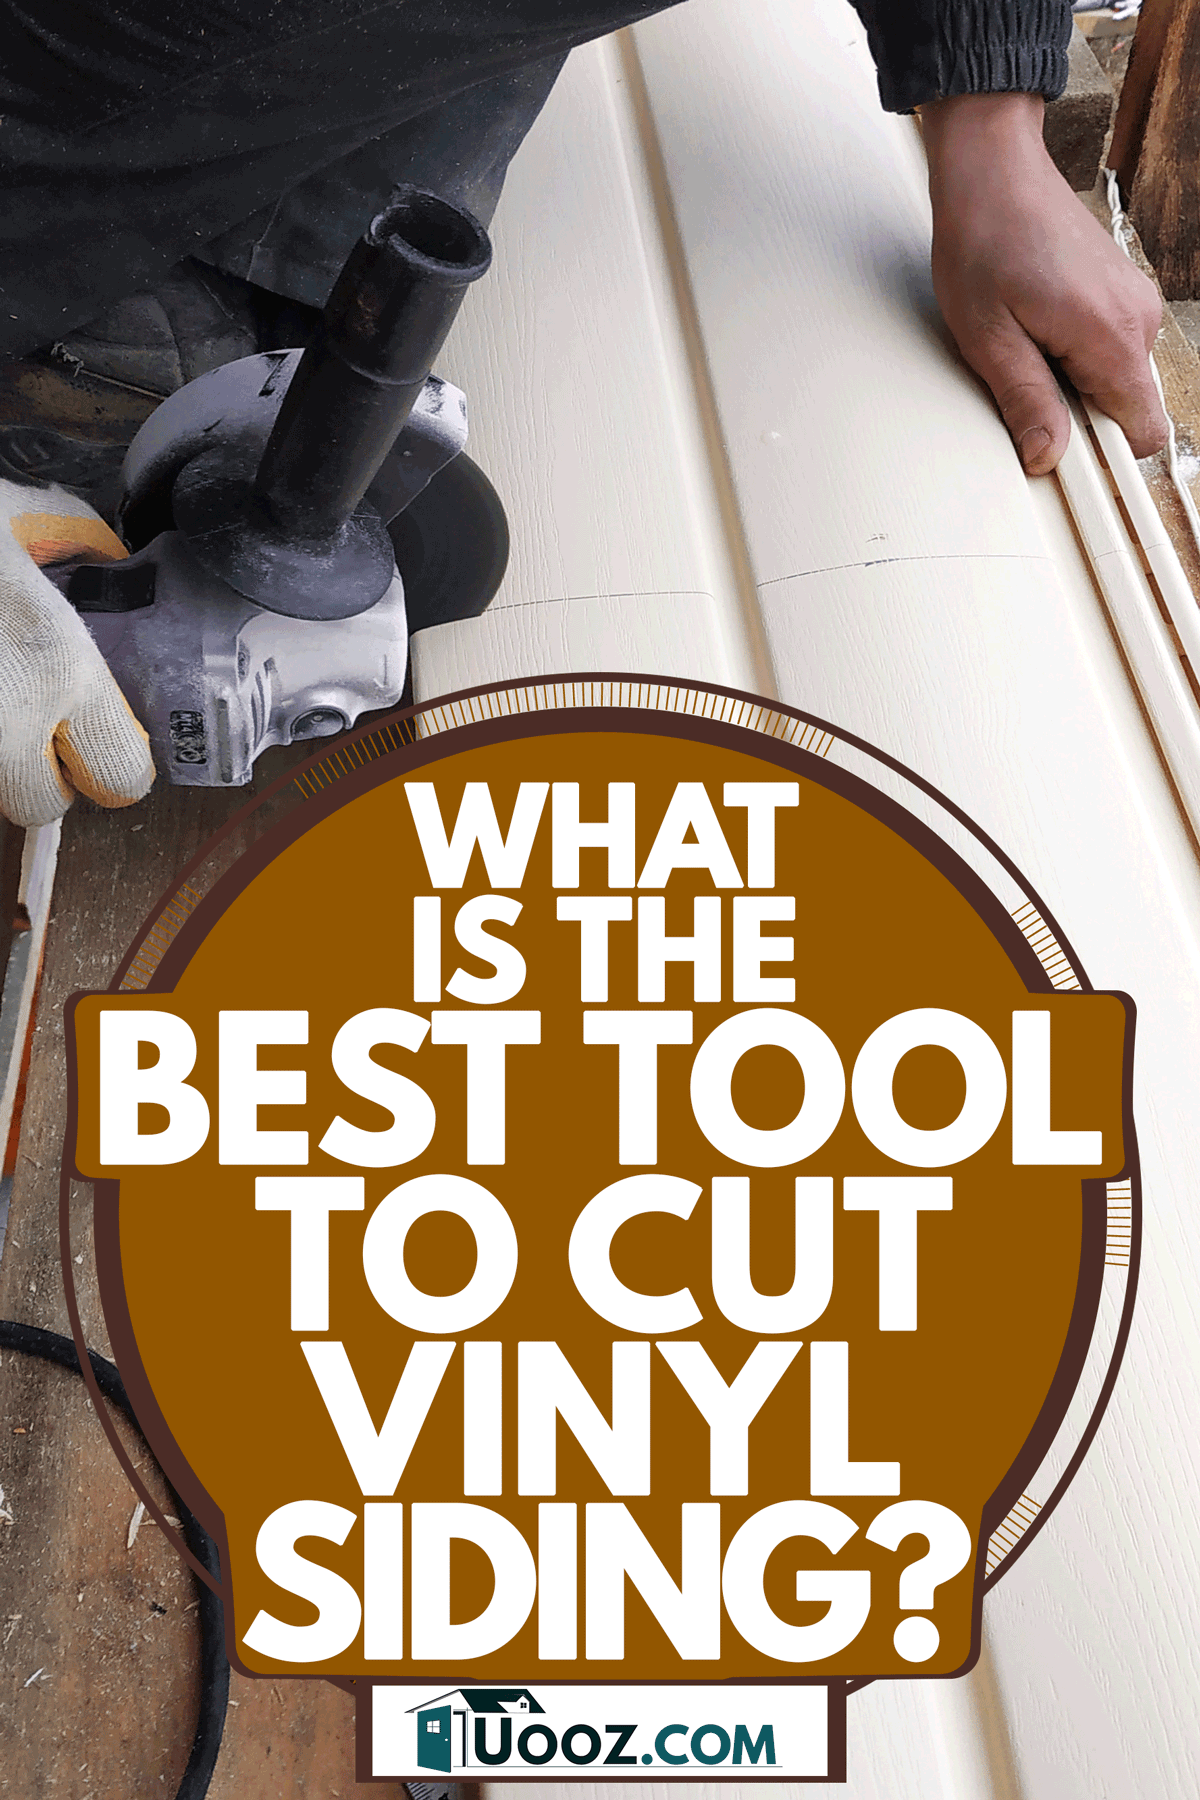 A worker cutting vinyl siding for a house, What Is The Best Tool To Cut Vinyl Siding?